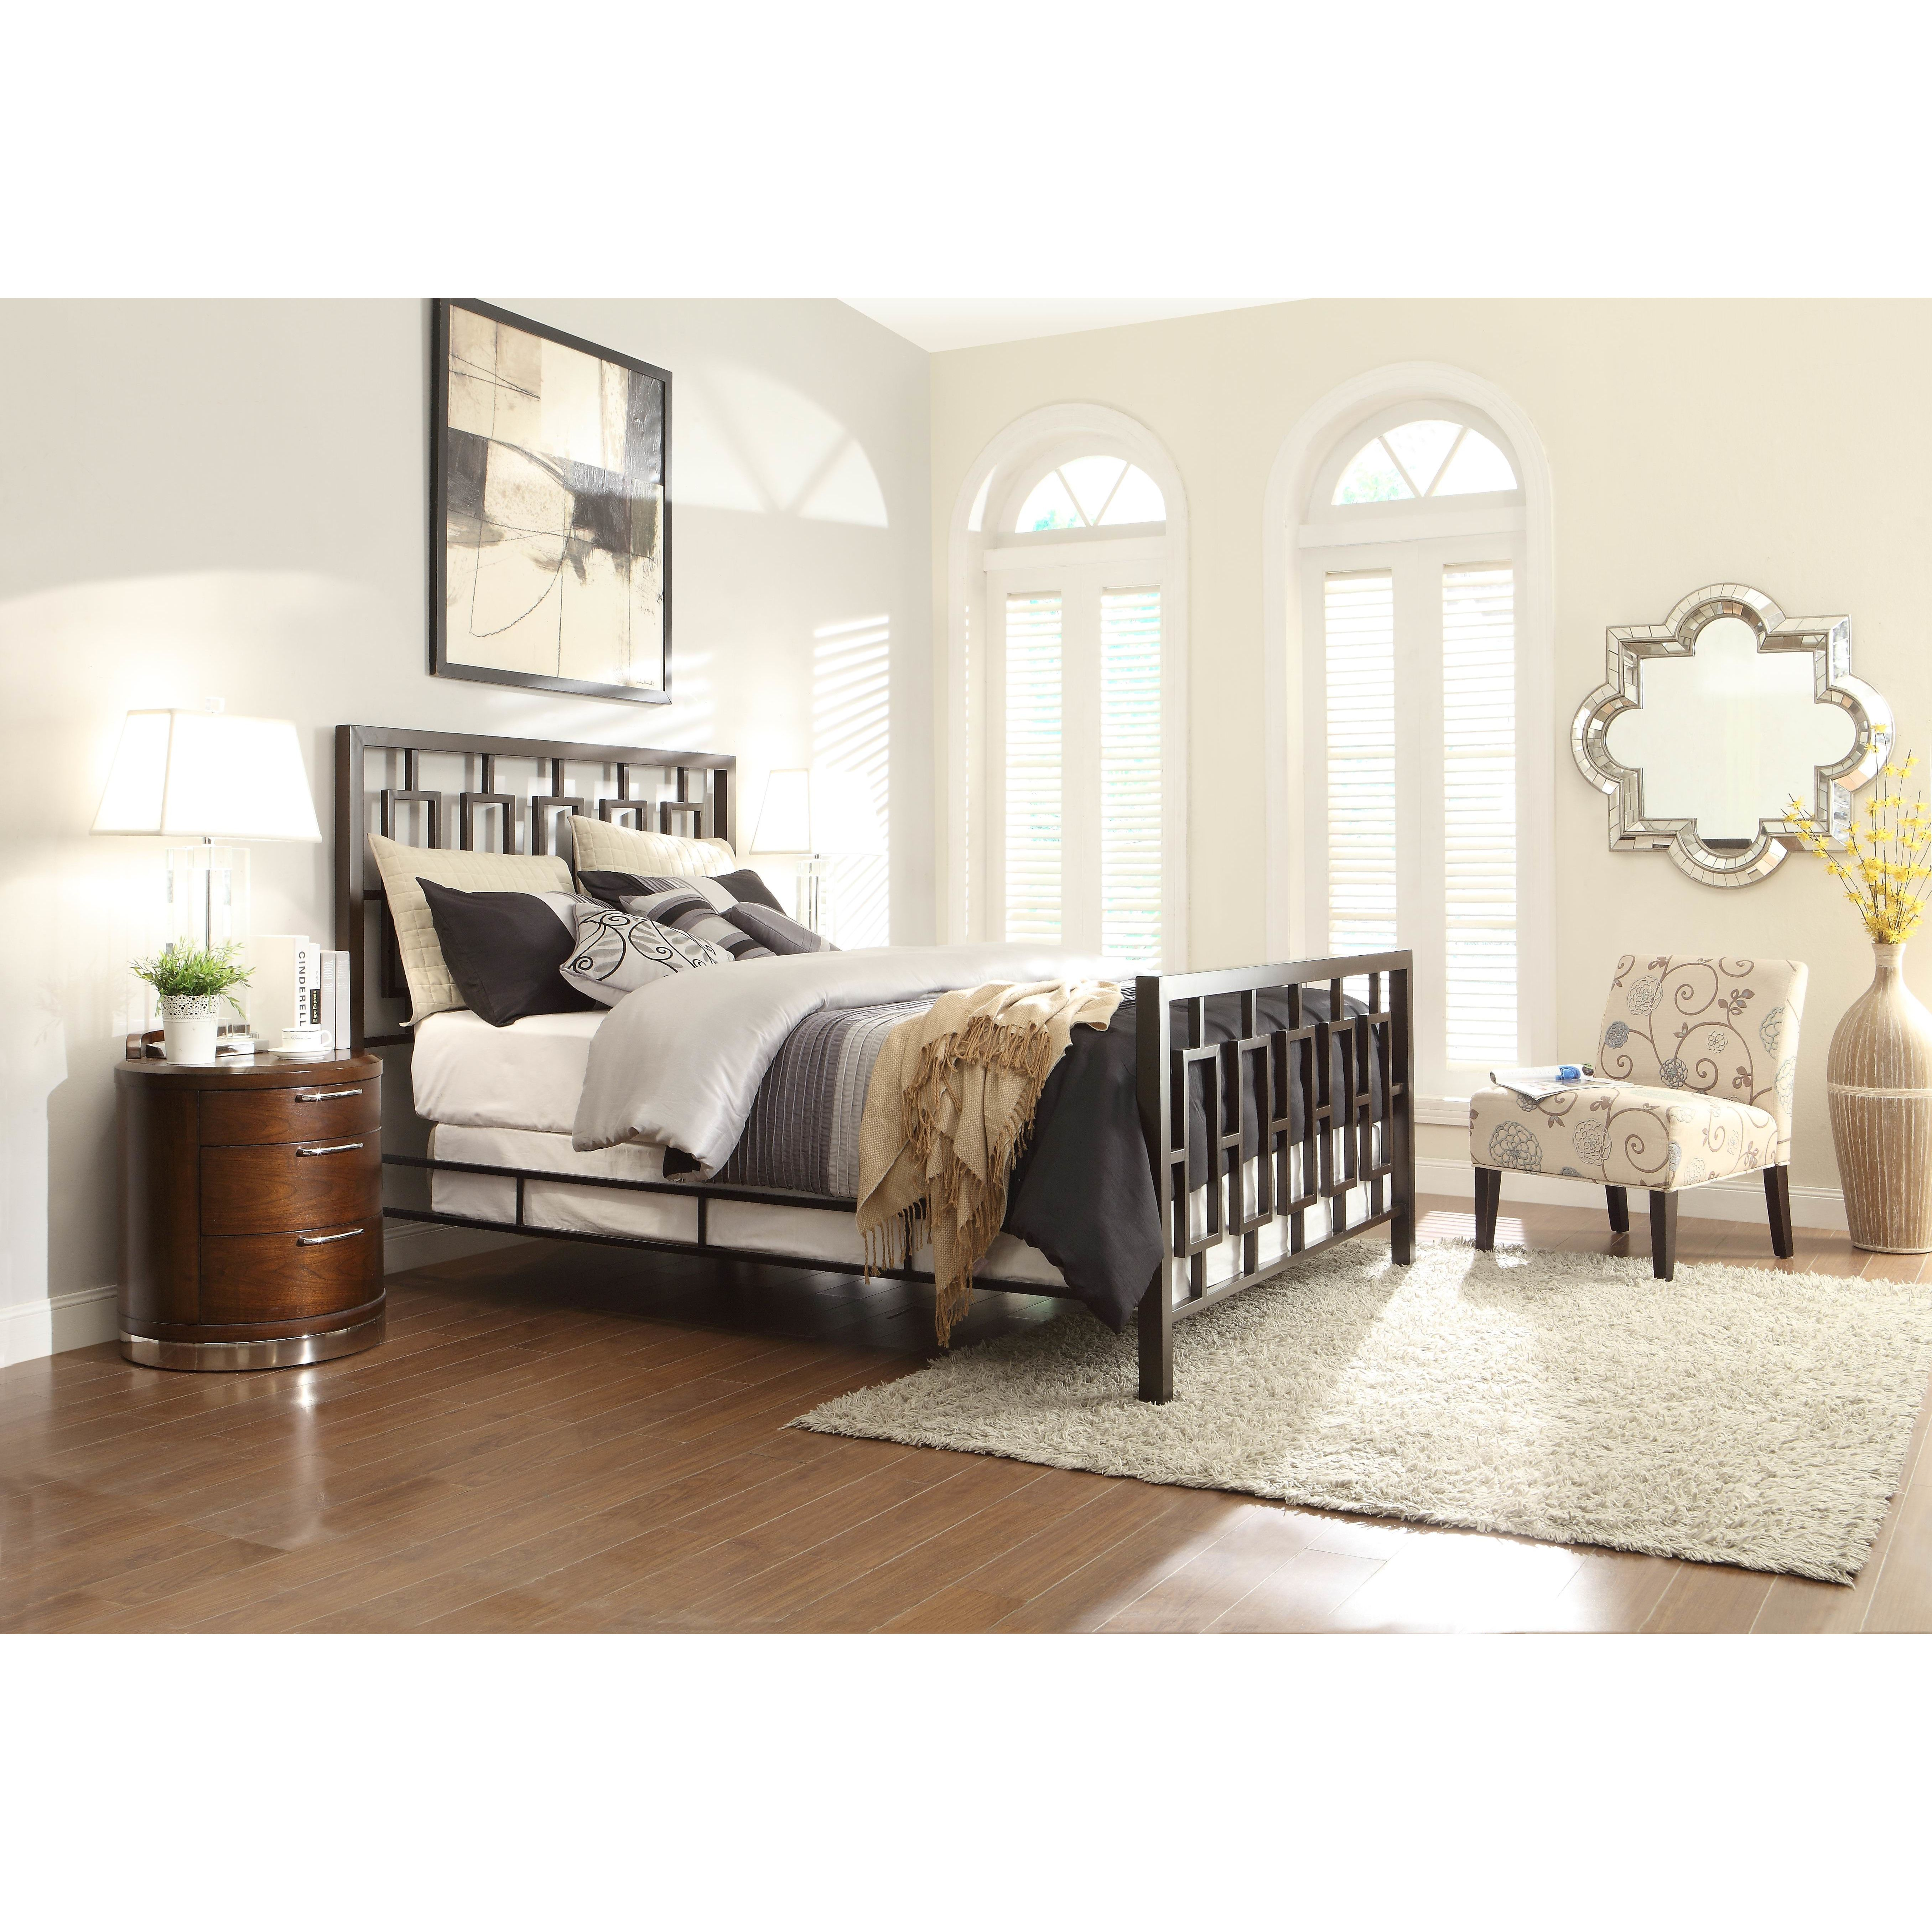 Awesome Beautiful Woodbridge Home Designs Furniture 30 About Remodel Home  Design Ideas With Woodbridge Home Designs